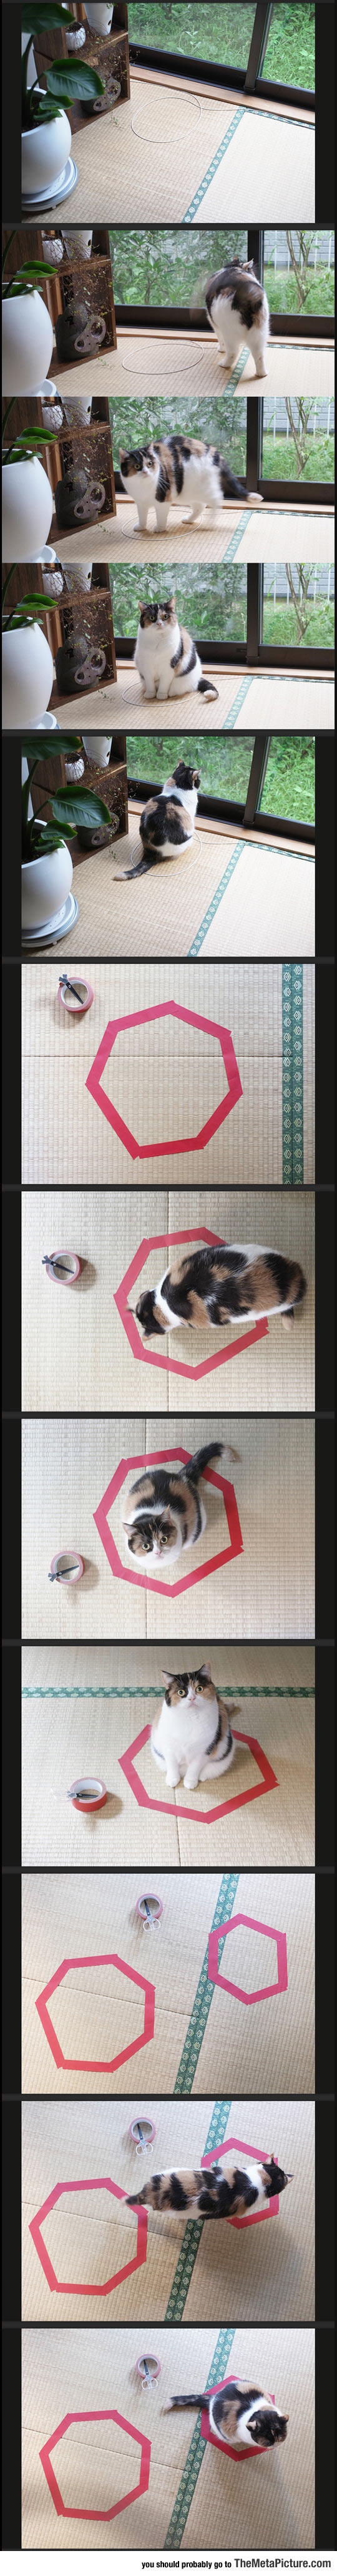 Trick Your Cat With A Circle